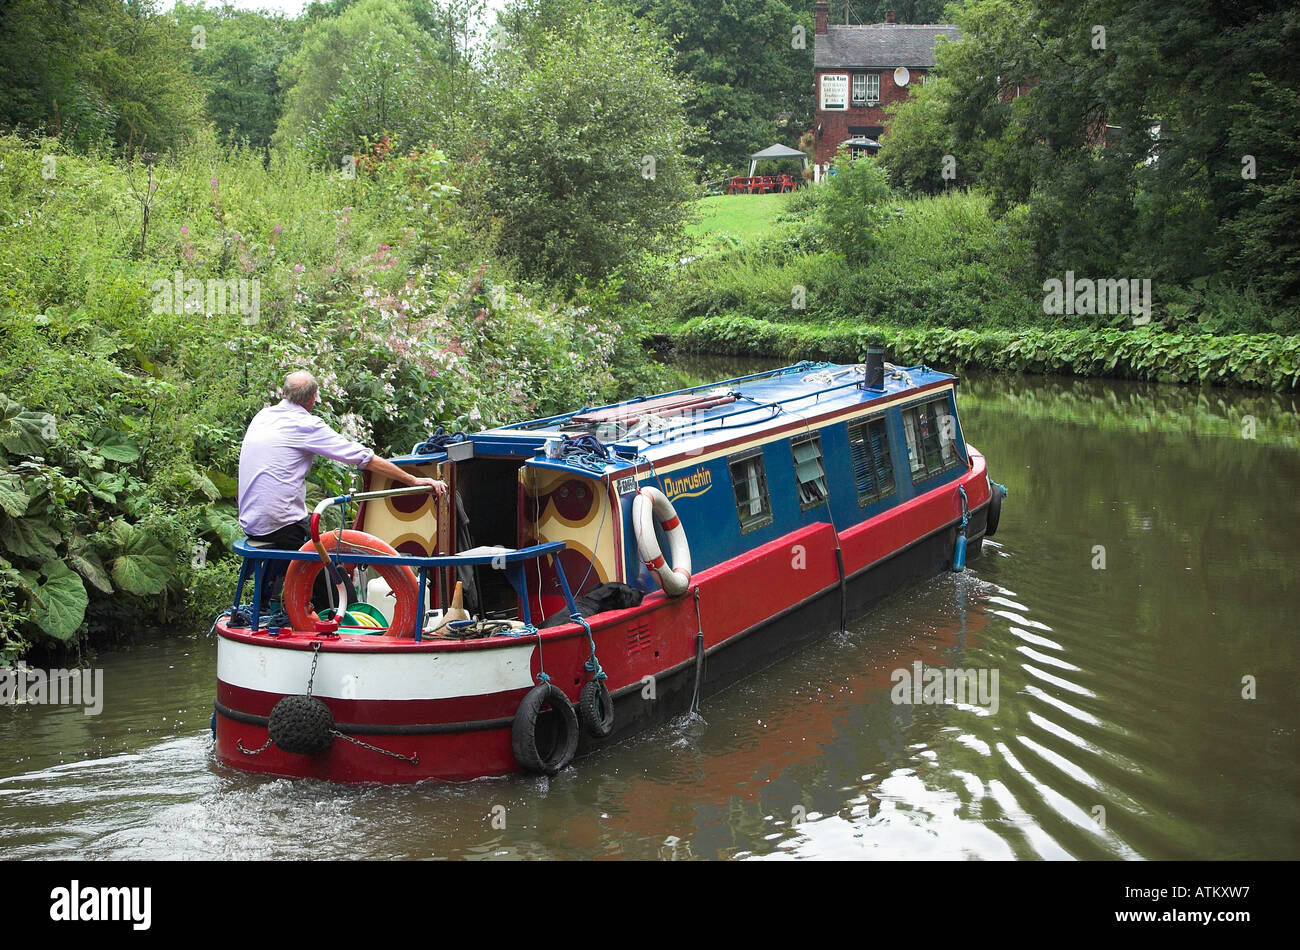 Narrow boat on the Caldon canal at Consall, Staffordshire, England - Stock Image